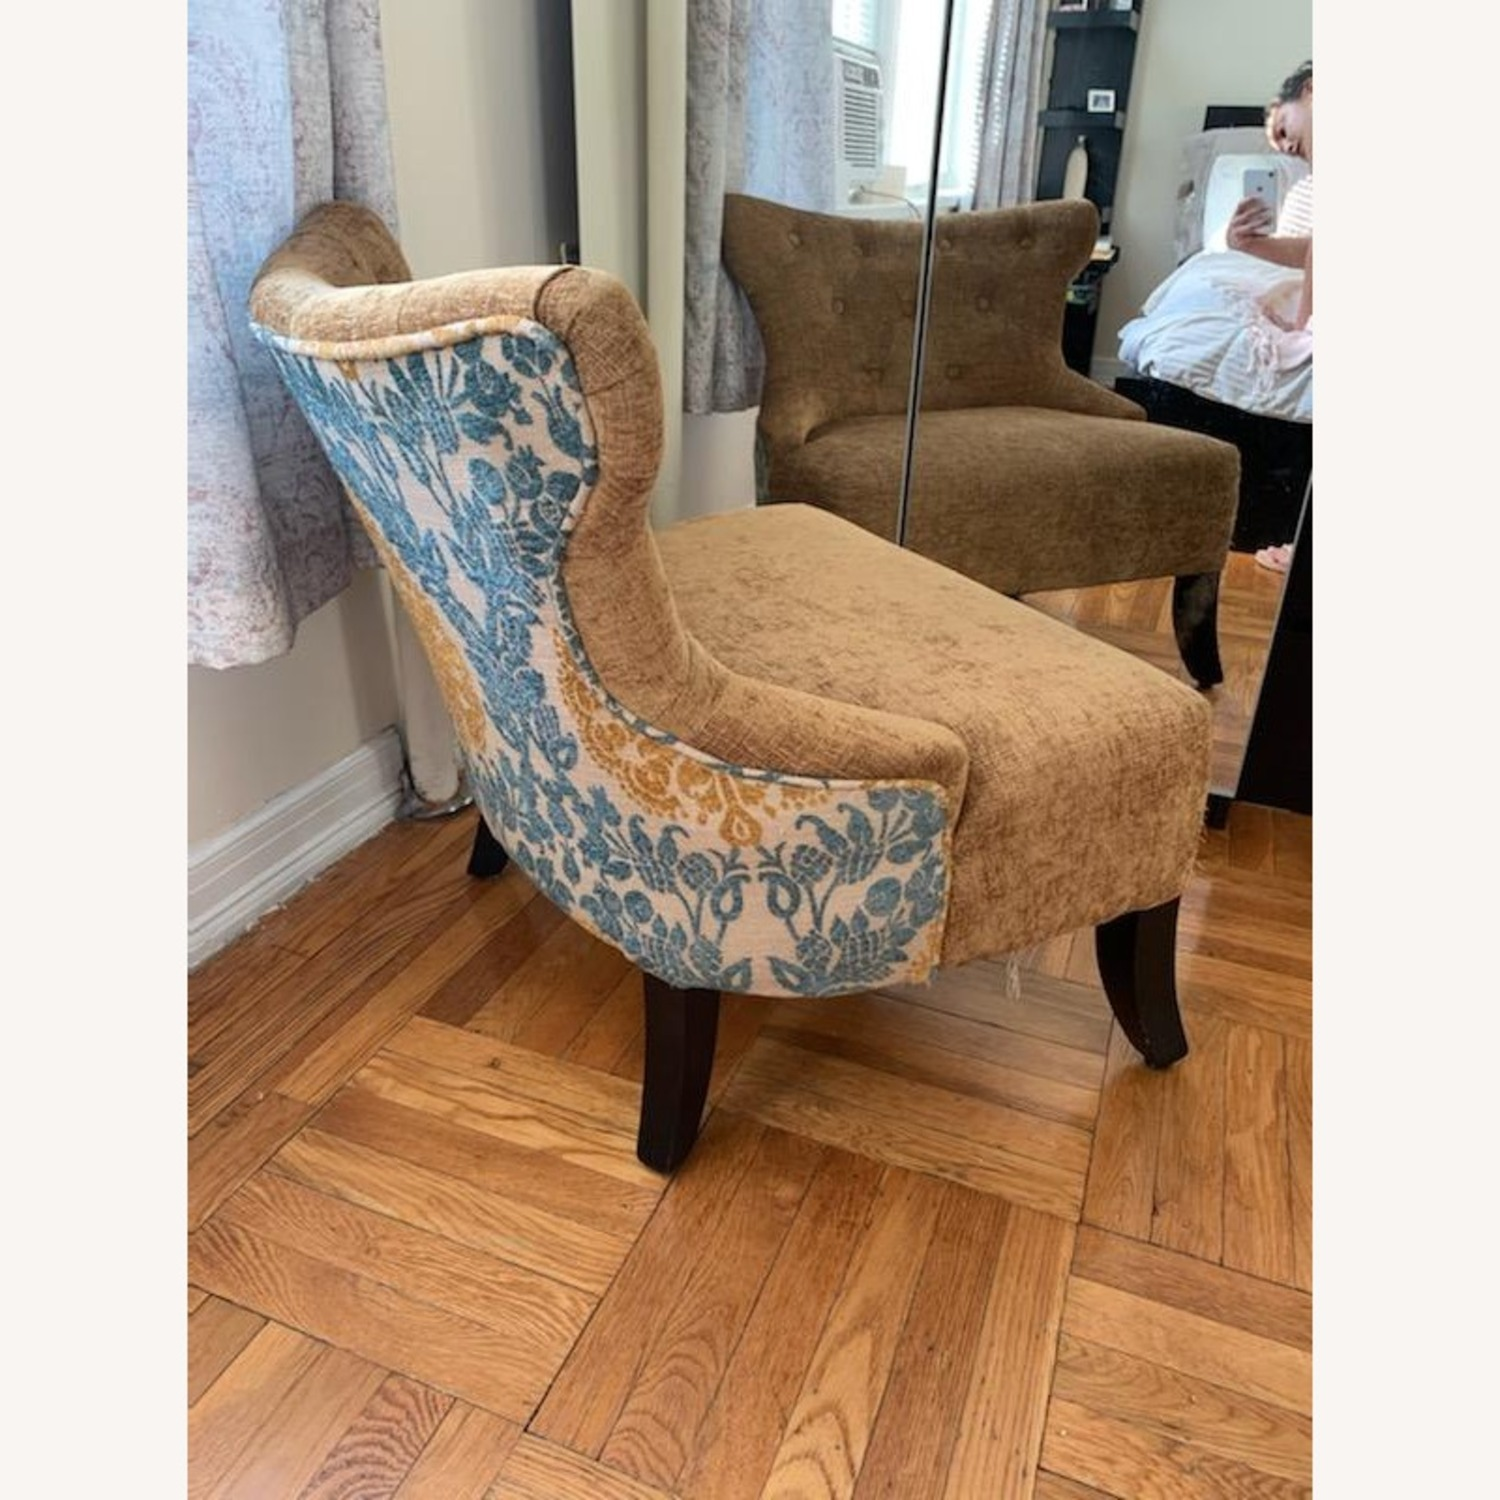 Pier 1 Imports Accent Chair - image-3